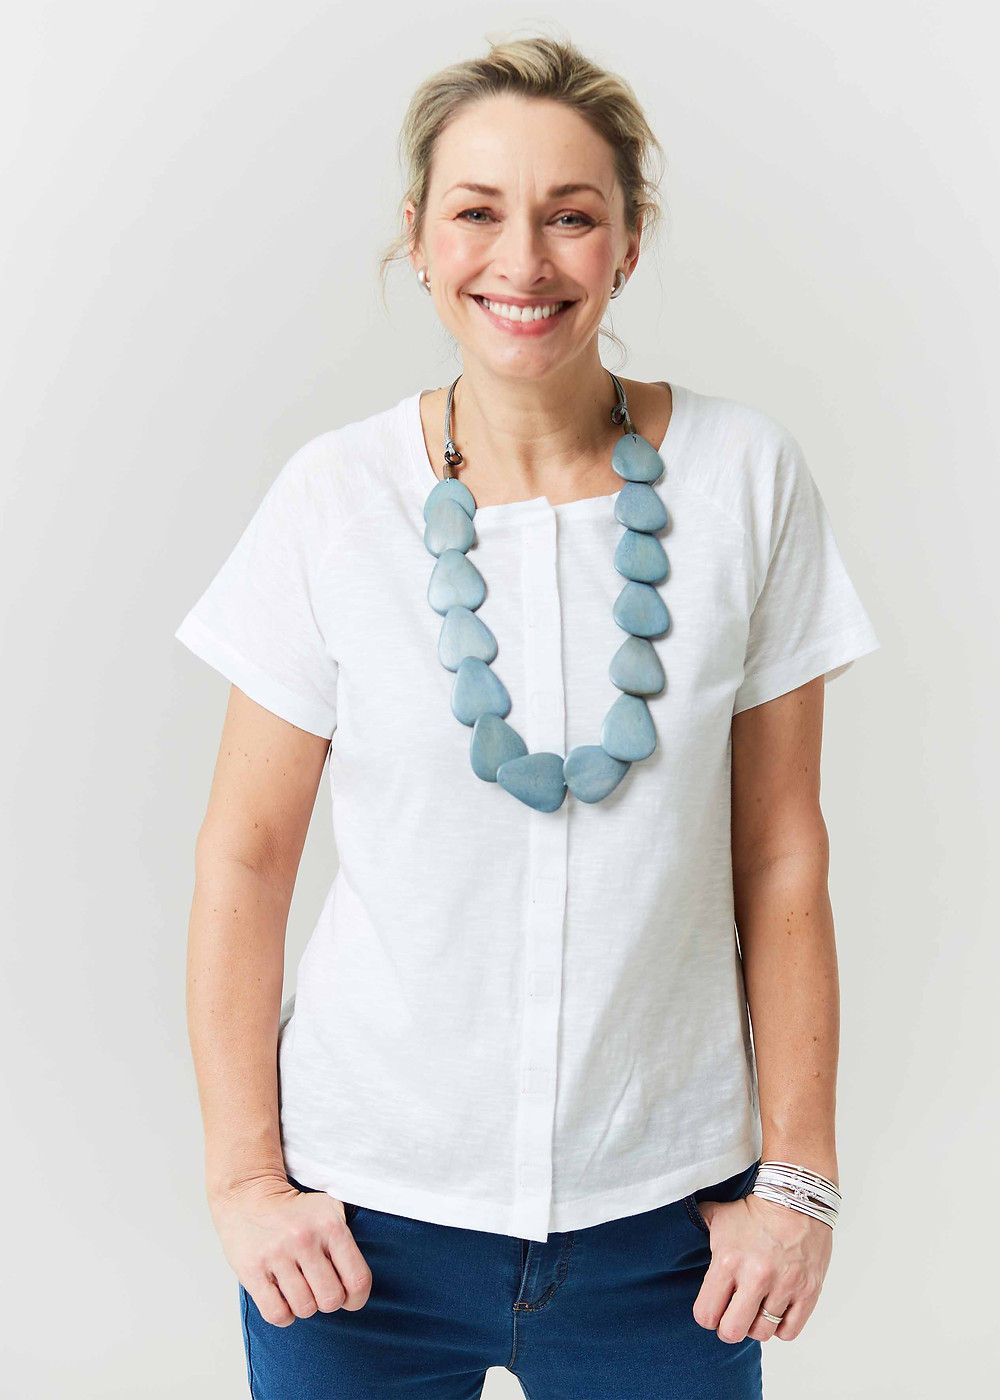 A blonde lady is smiling at the camera, her hair tied up in a messy bun. She wears a white tee shirt, with a front velcro closure a large statement blue necklace and blue jeans. Her thumbs are in her pockets.